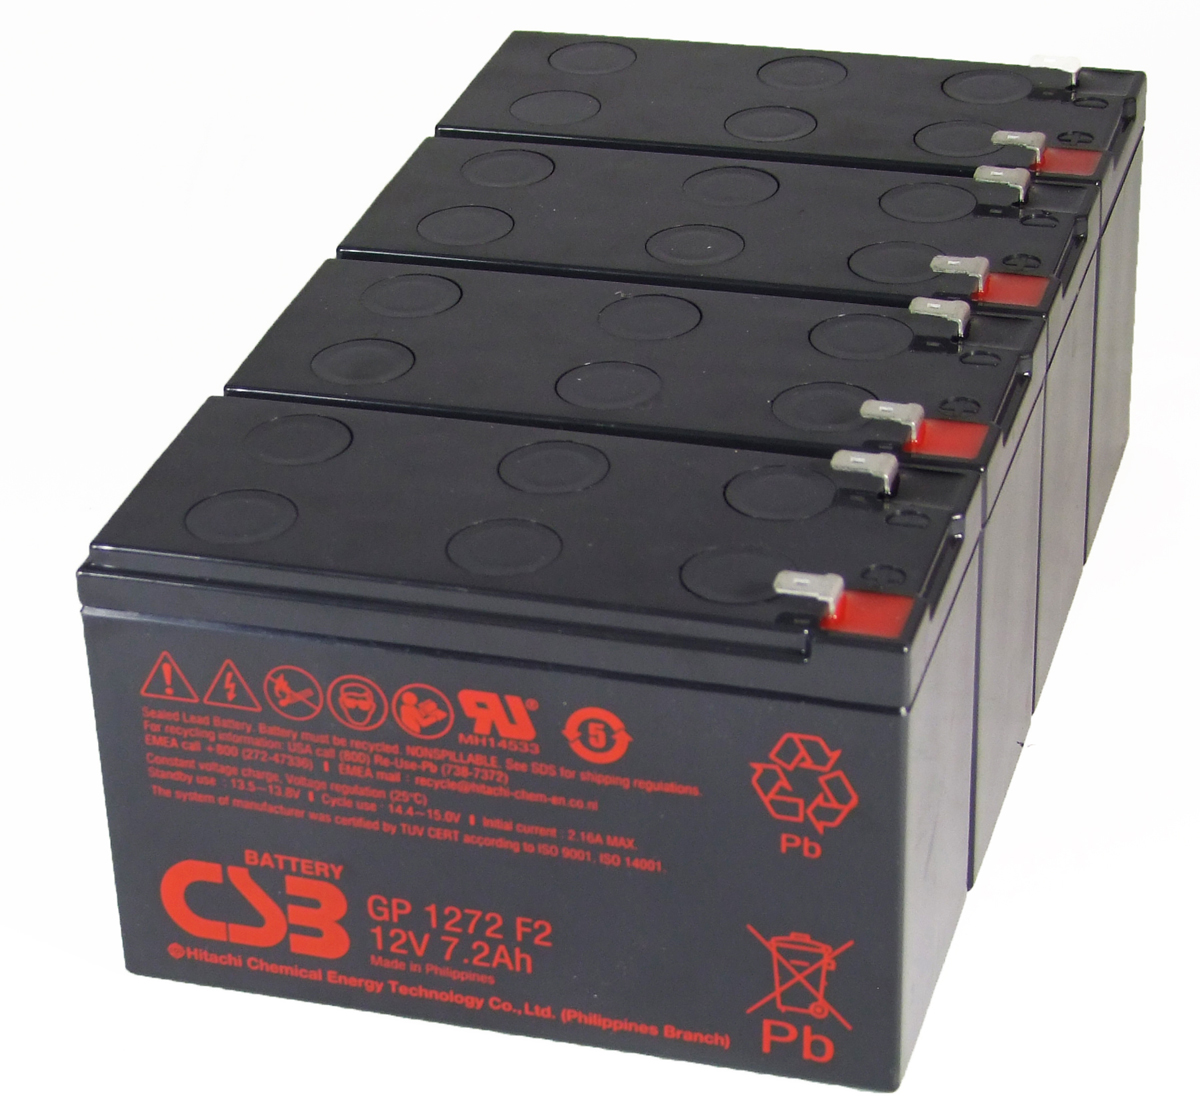 MDS132 UPS Battery Kit - Replaces APC RBC132